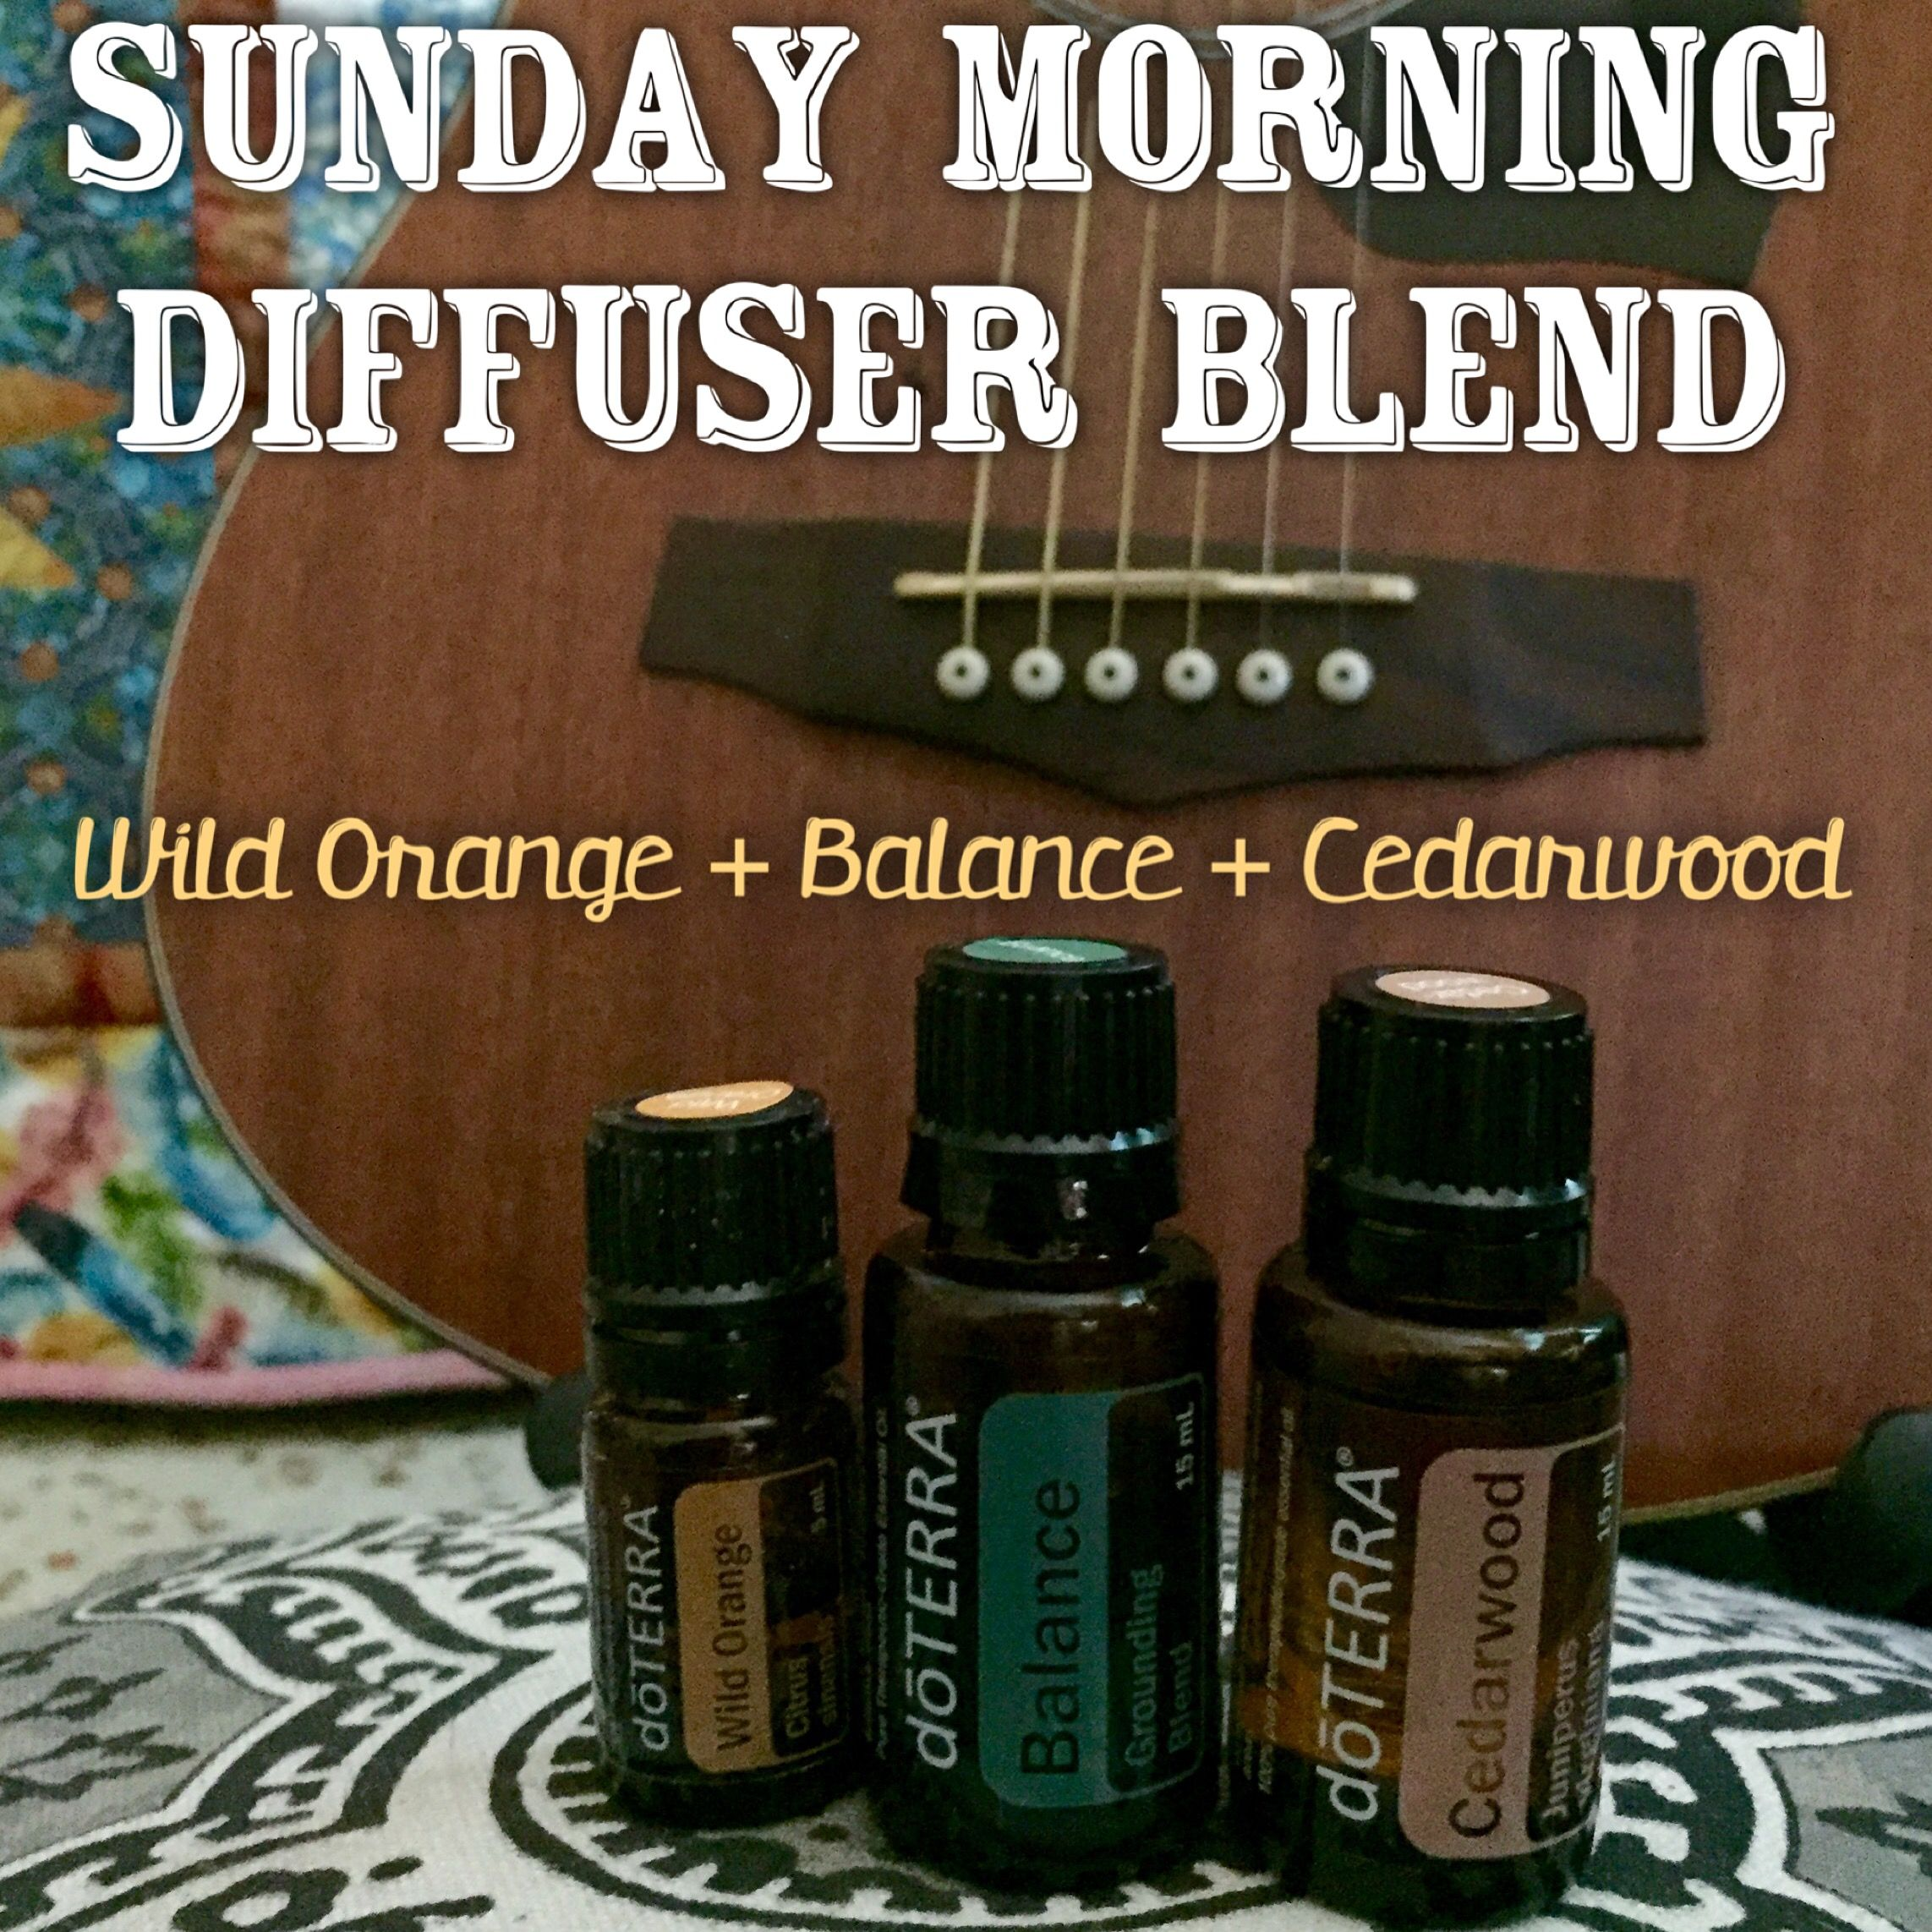 An essential oil diffuser blend for Sunday morning! A blend of ...